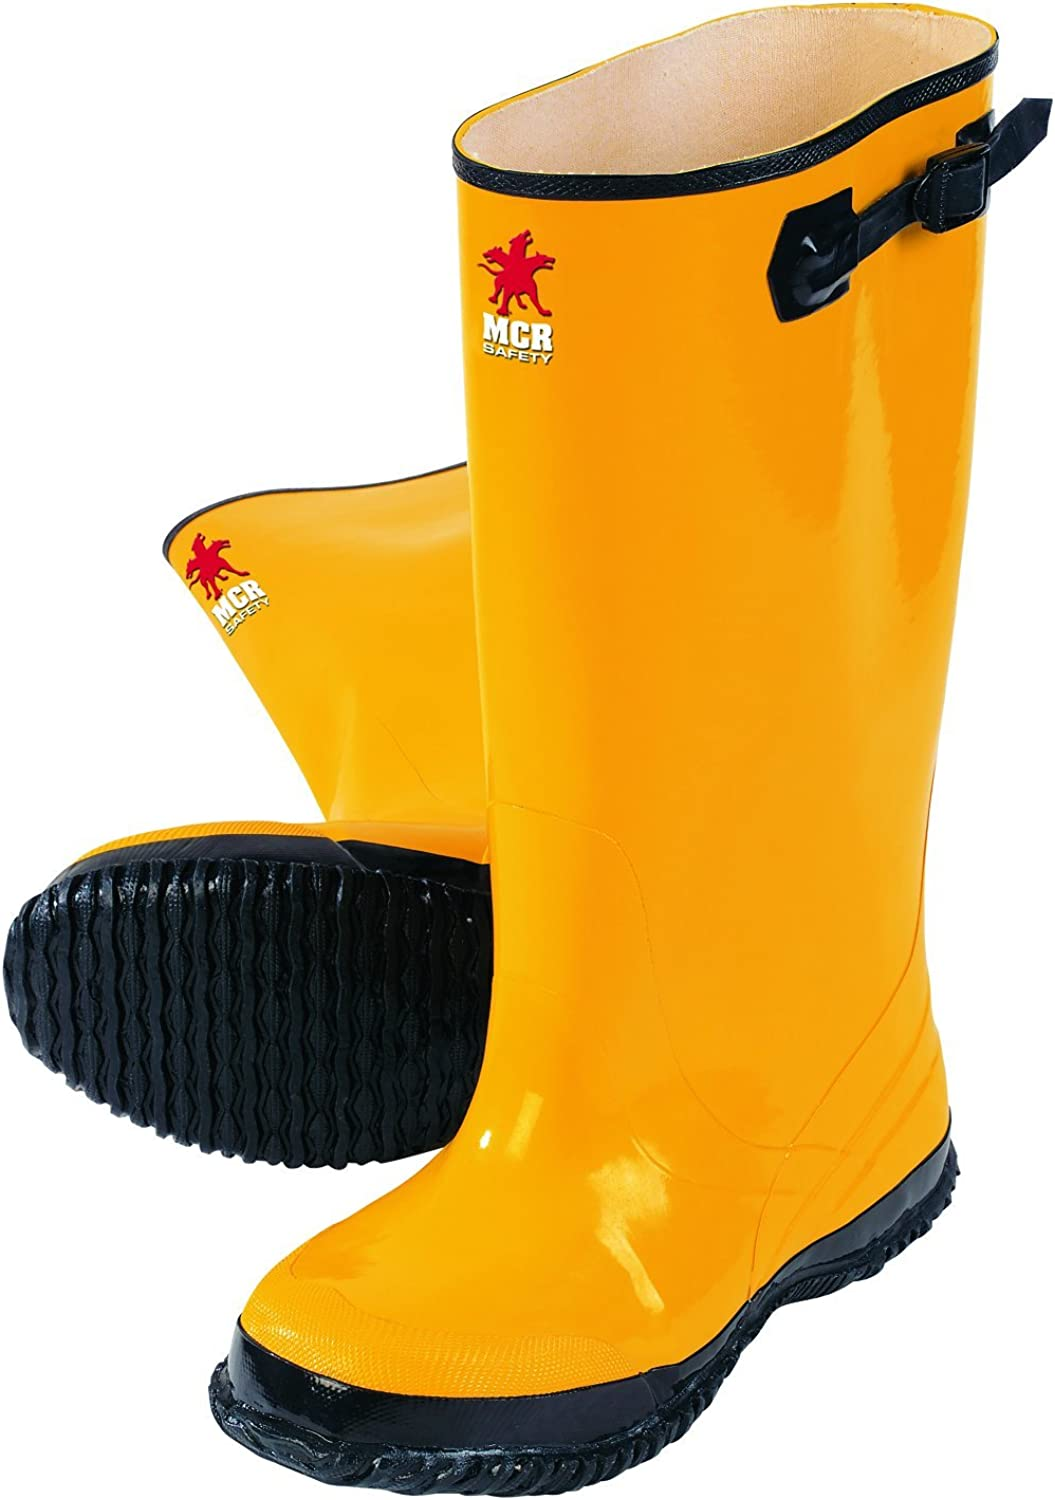 MCR Safety BYR10010 Waterproof Rubber Slush Boot with Cleated Outsole, Yellow, Size 10, 1-Pair